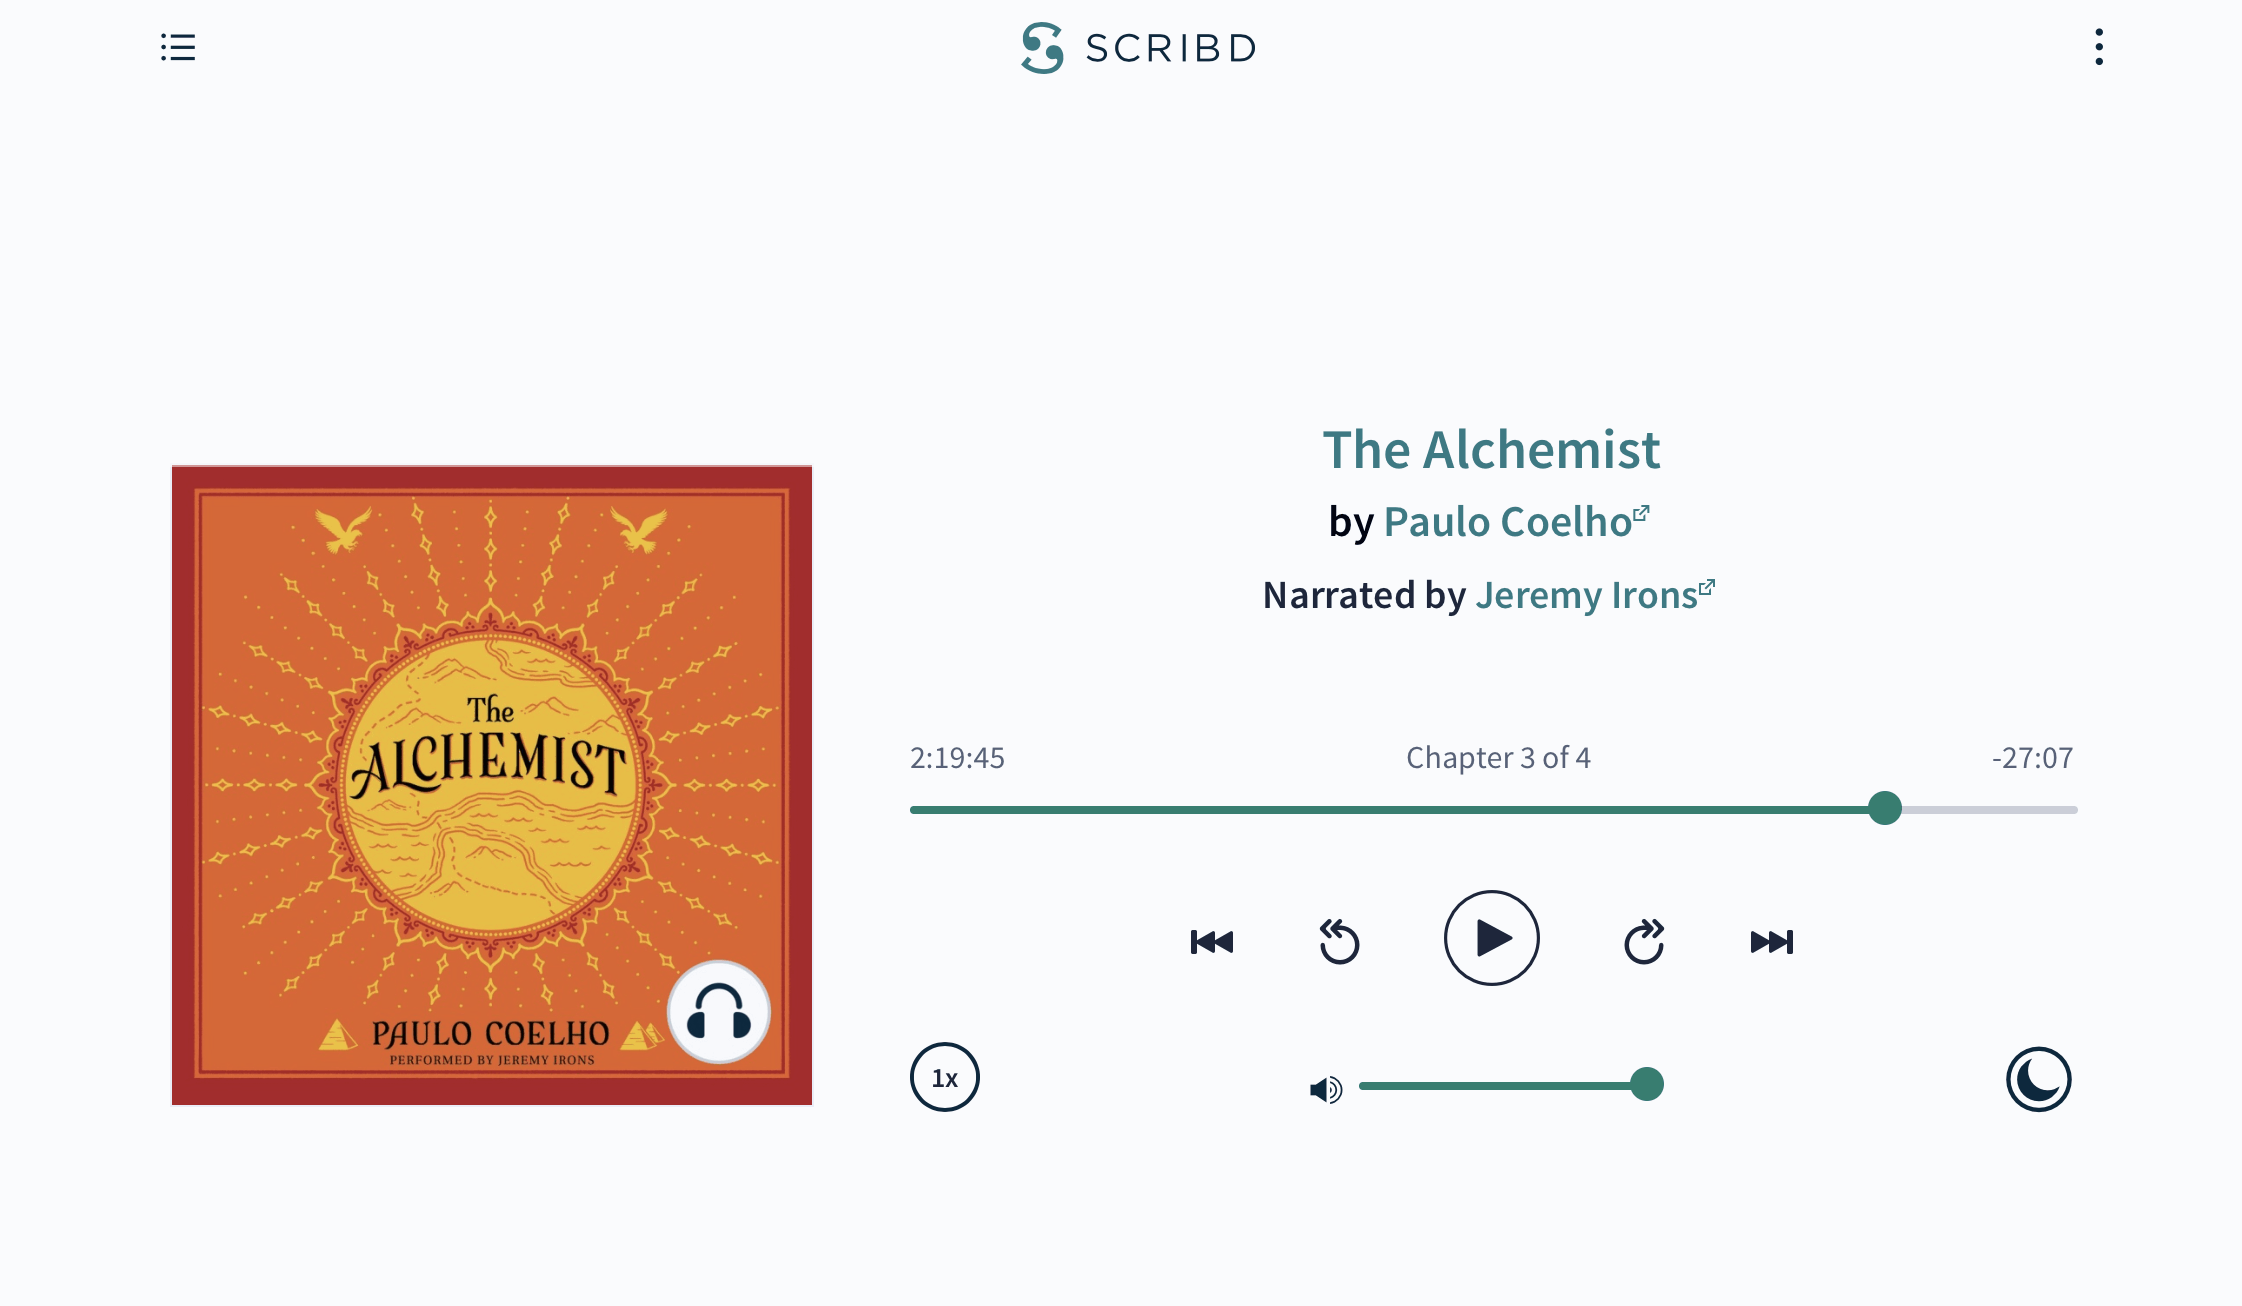 The Alchemist audiobook on Scribd